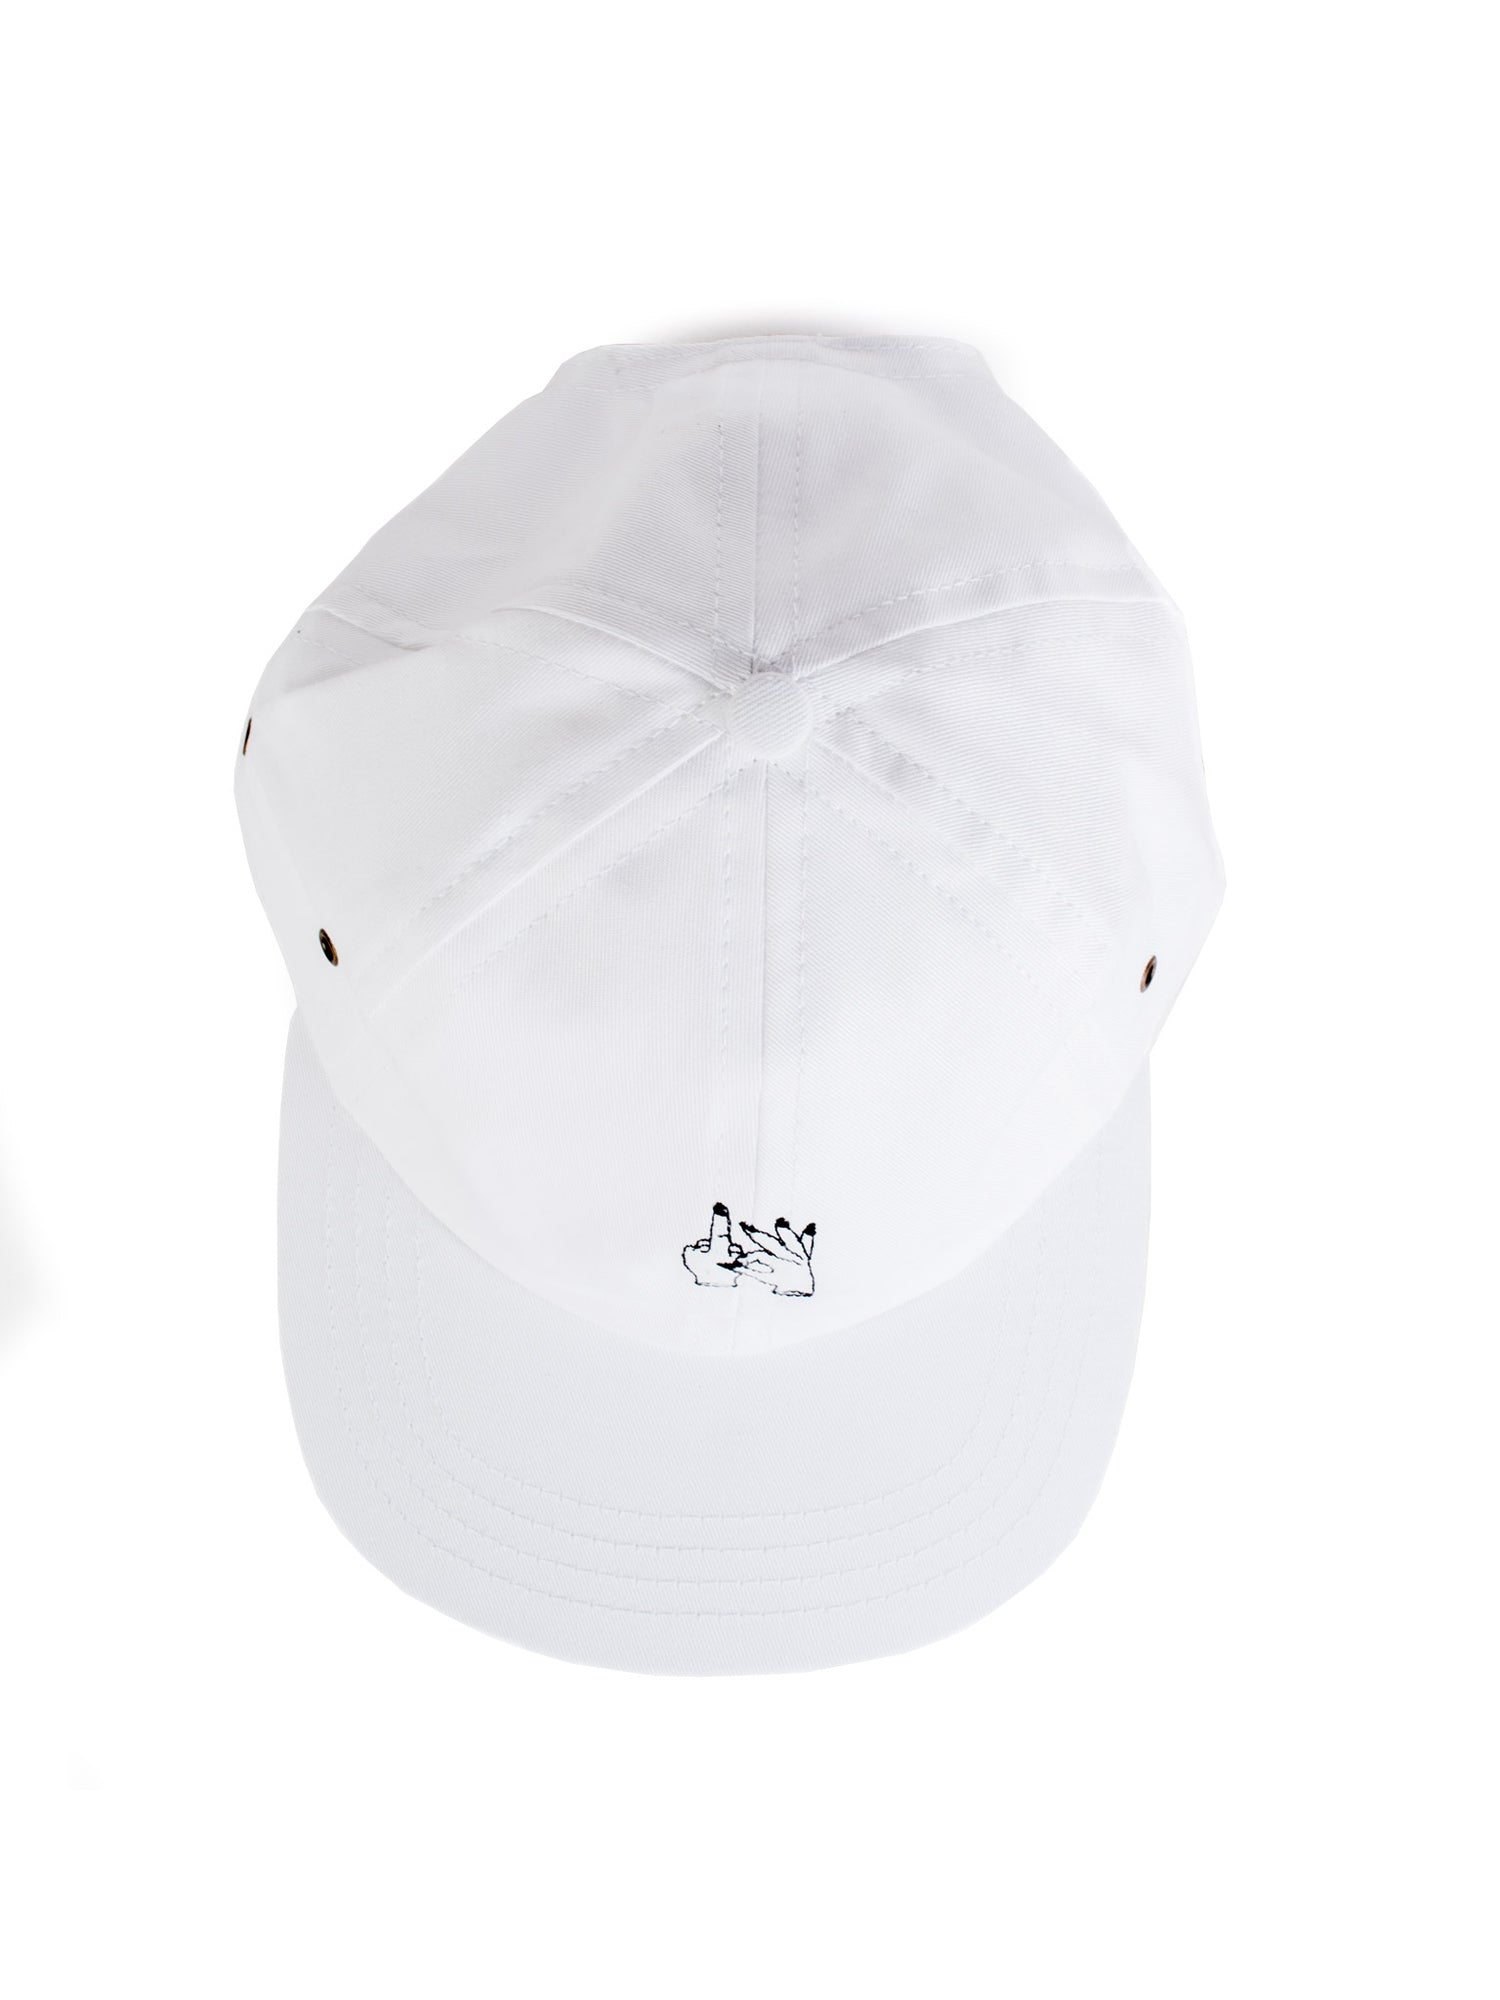 Shop hat in white